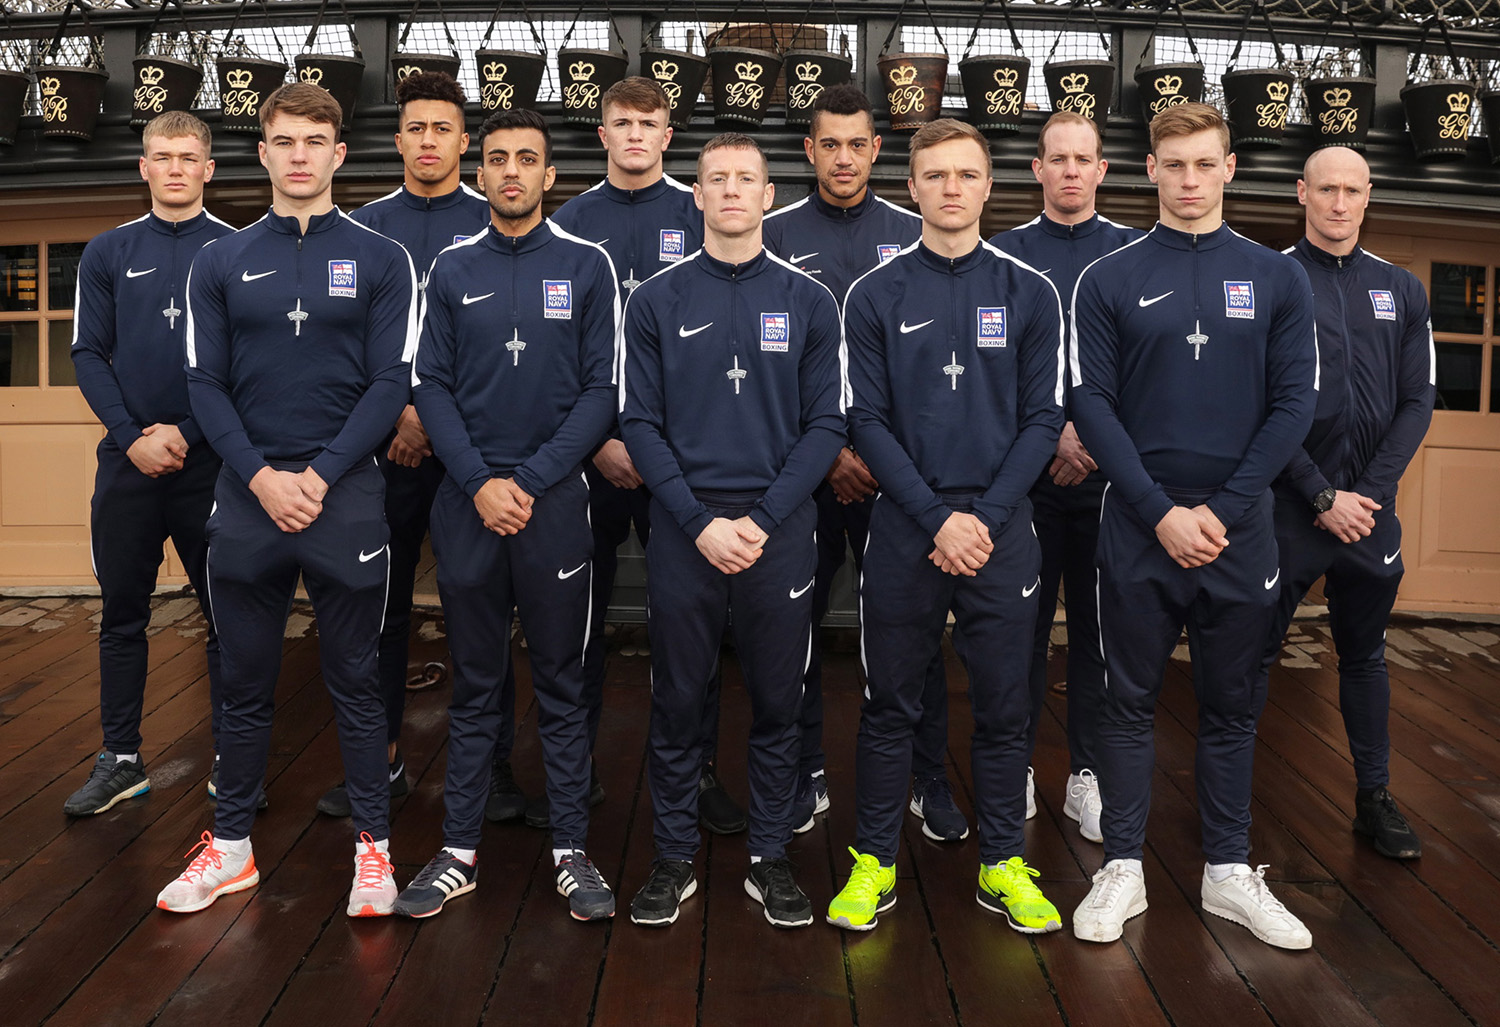 Royal Navy boxers aim for title of UK Armed Forces champions